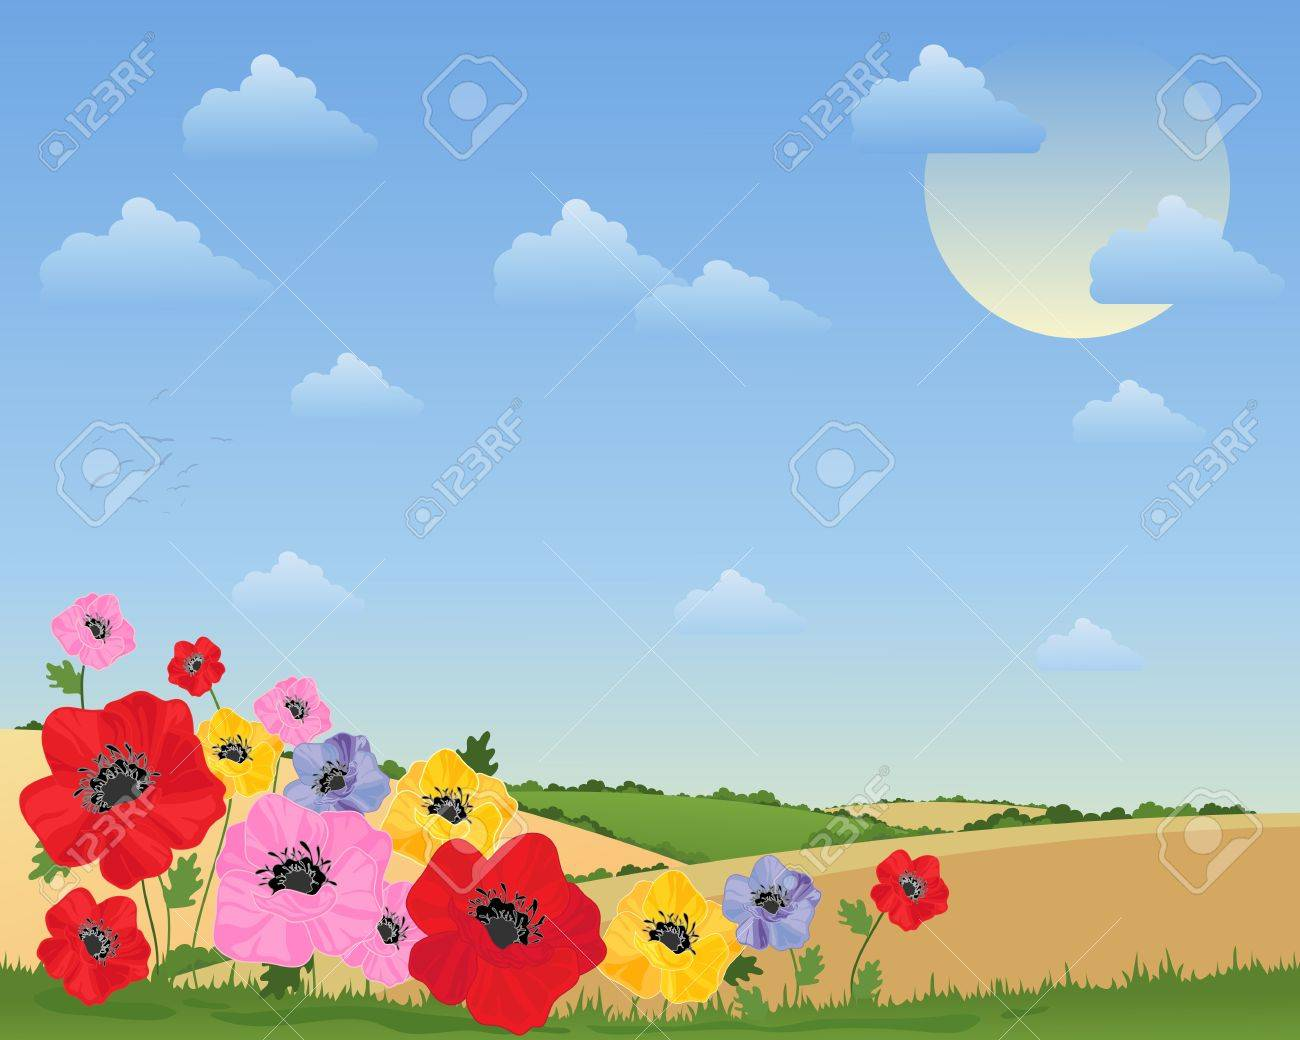 an illustration of colorful poppy flowers in front of a summer landscape with rolling hills hedgerows and fluffy clouds Stock Vector - 14372214